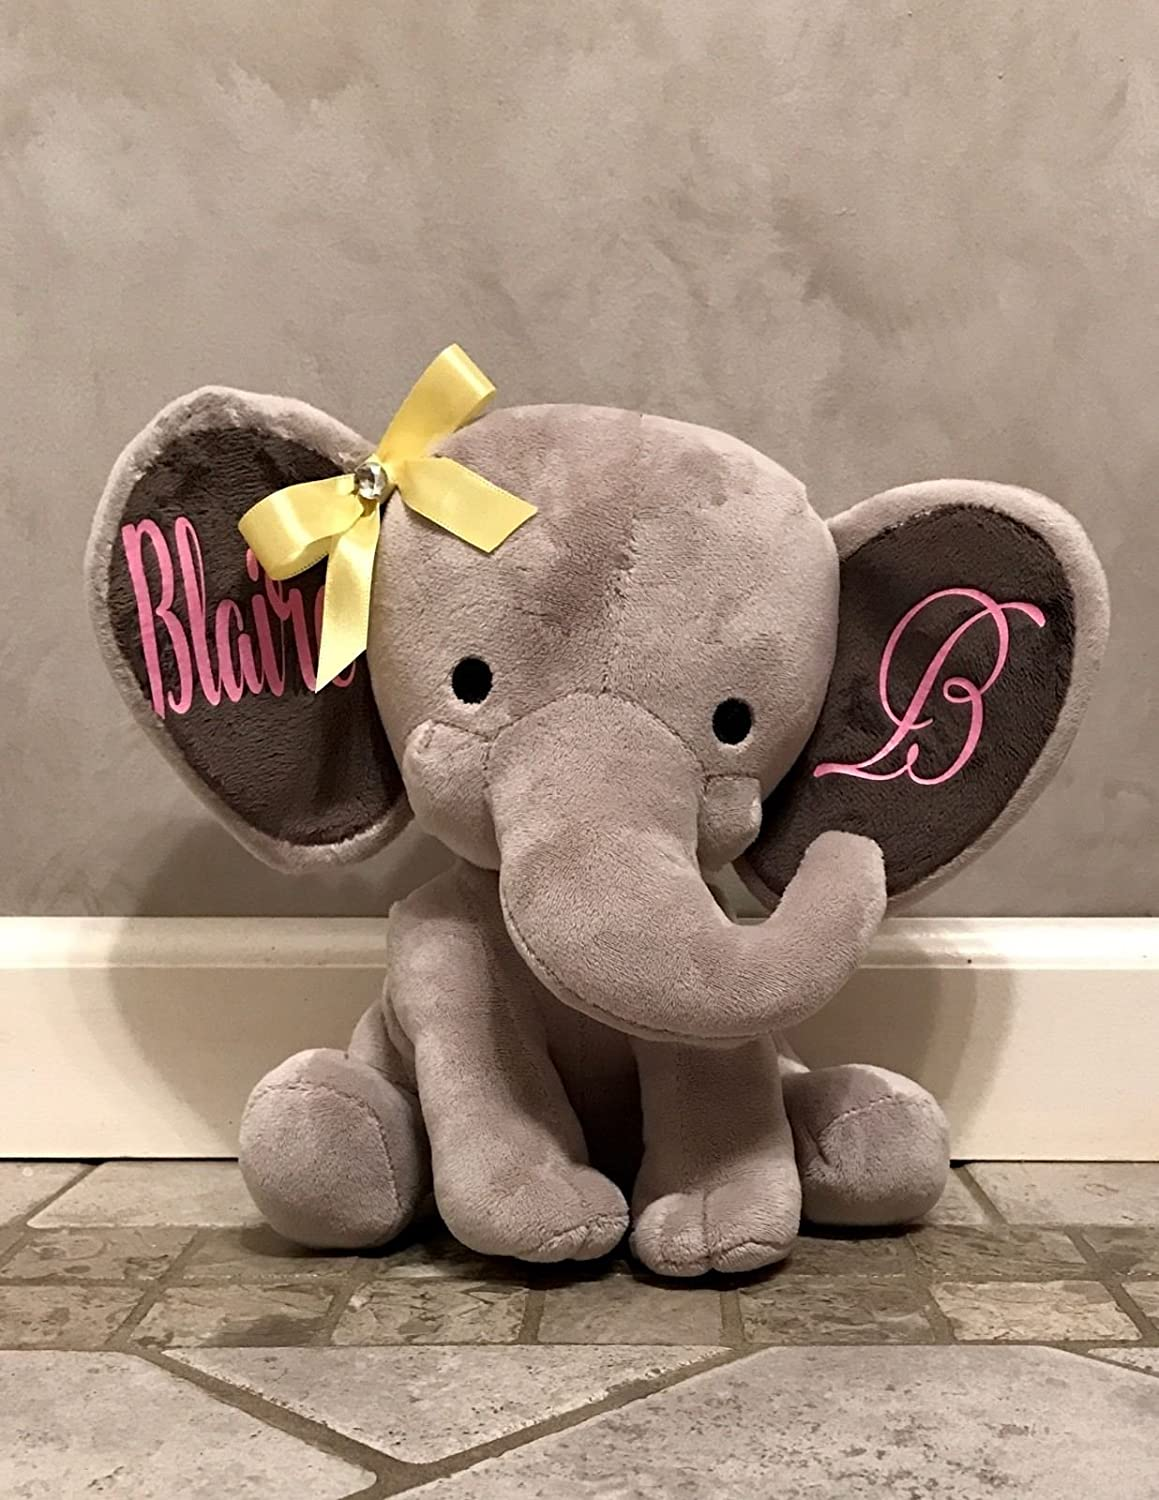 Personalized Decorative 9 Stuffed Plush Grey Elephant. Great for Baby Shower or Birthday Gift.